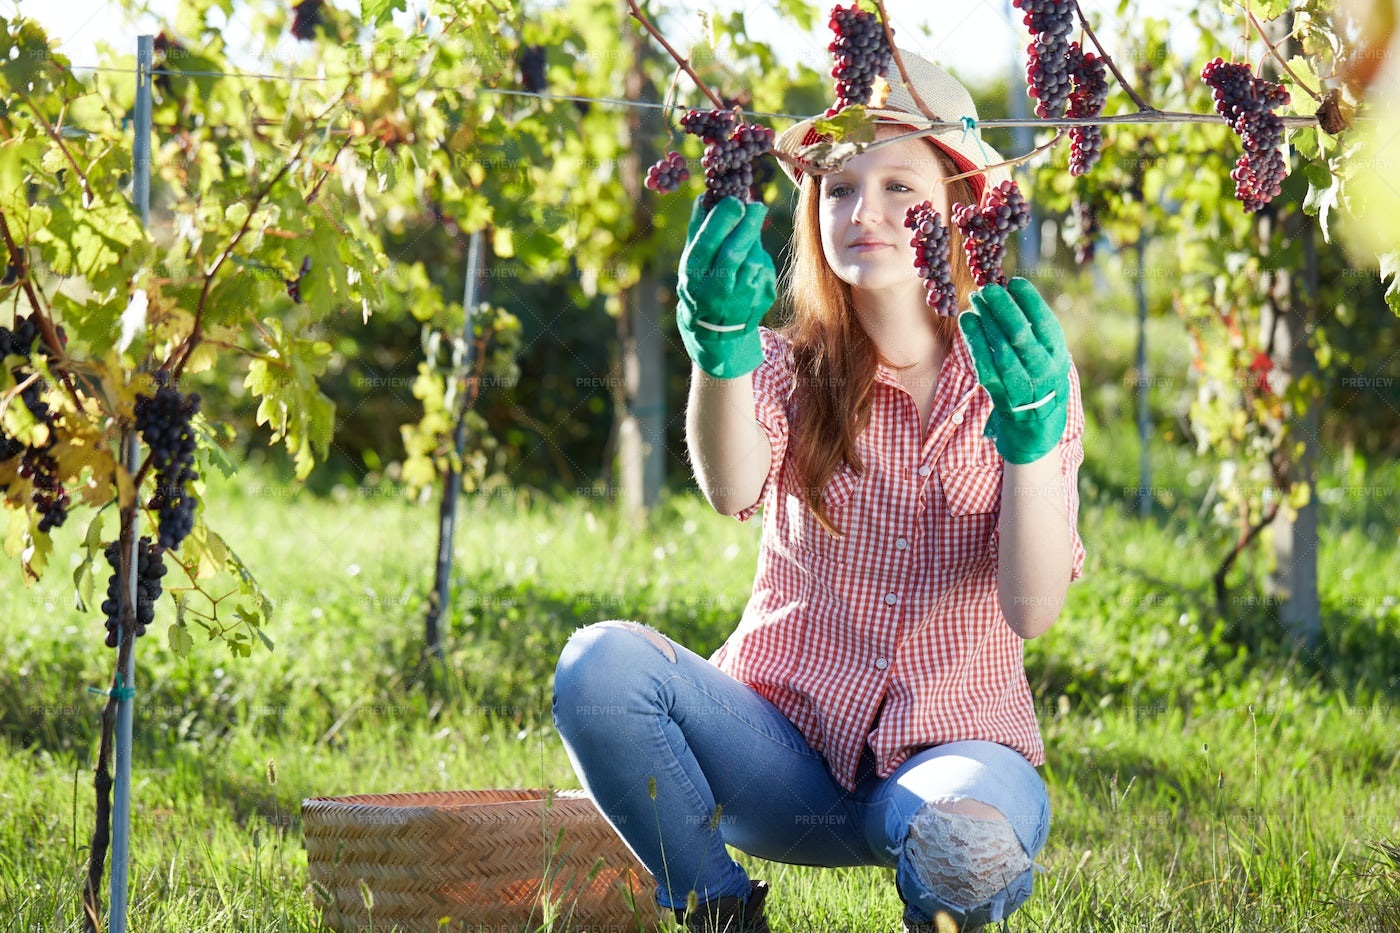 Picking The Grapes: Stock Photos